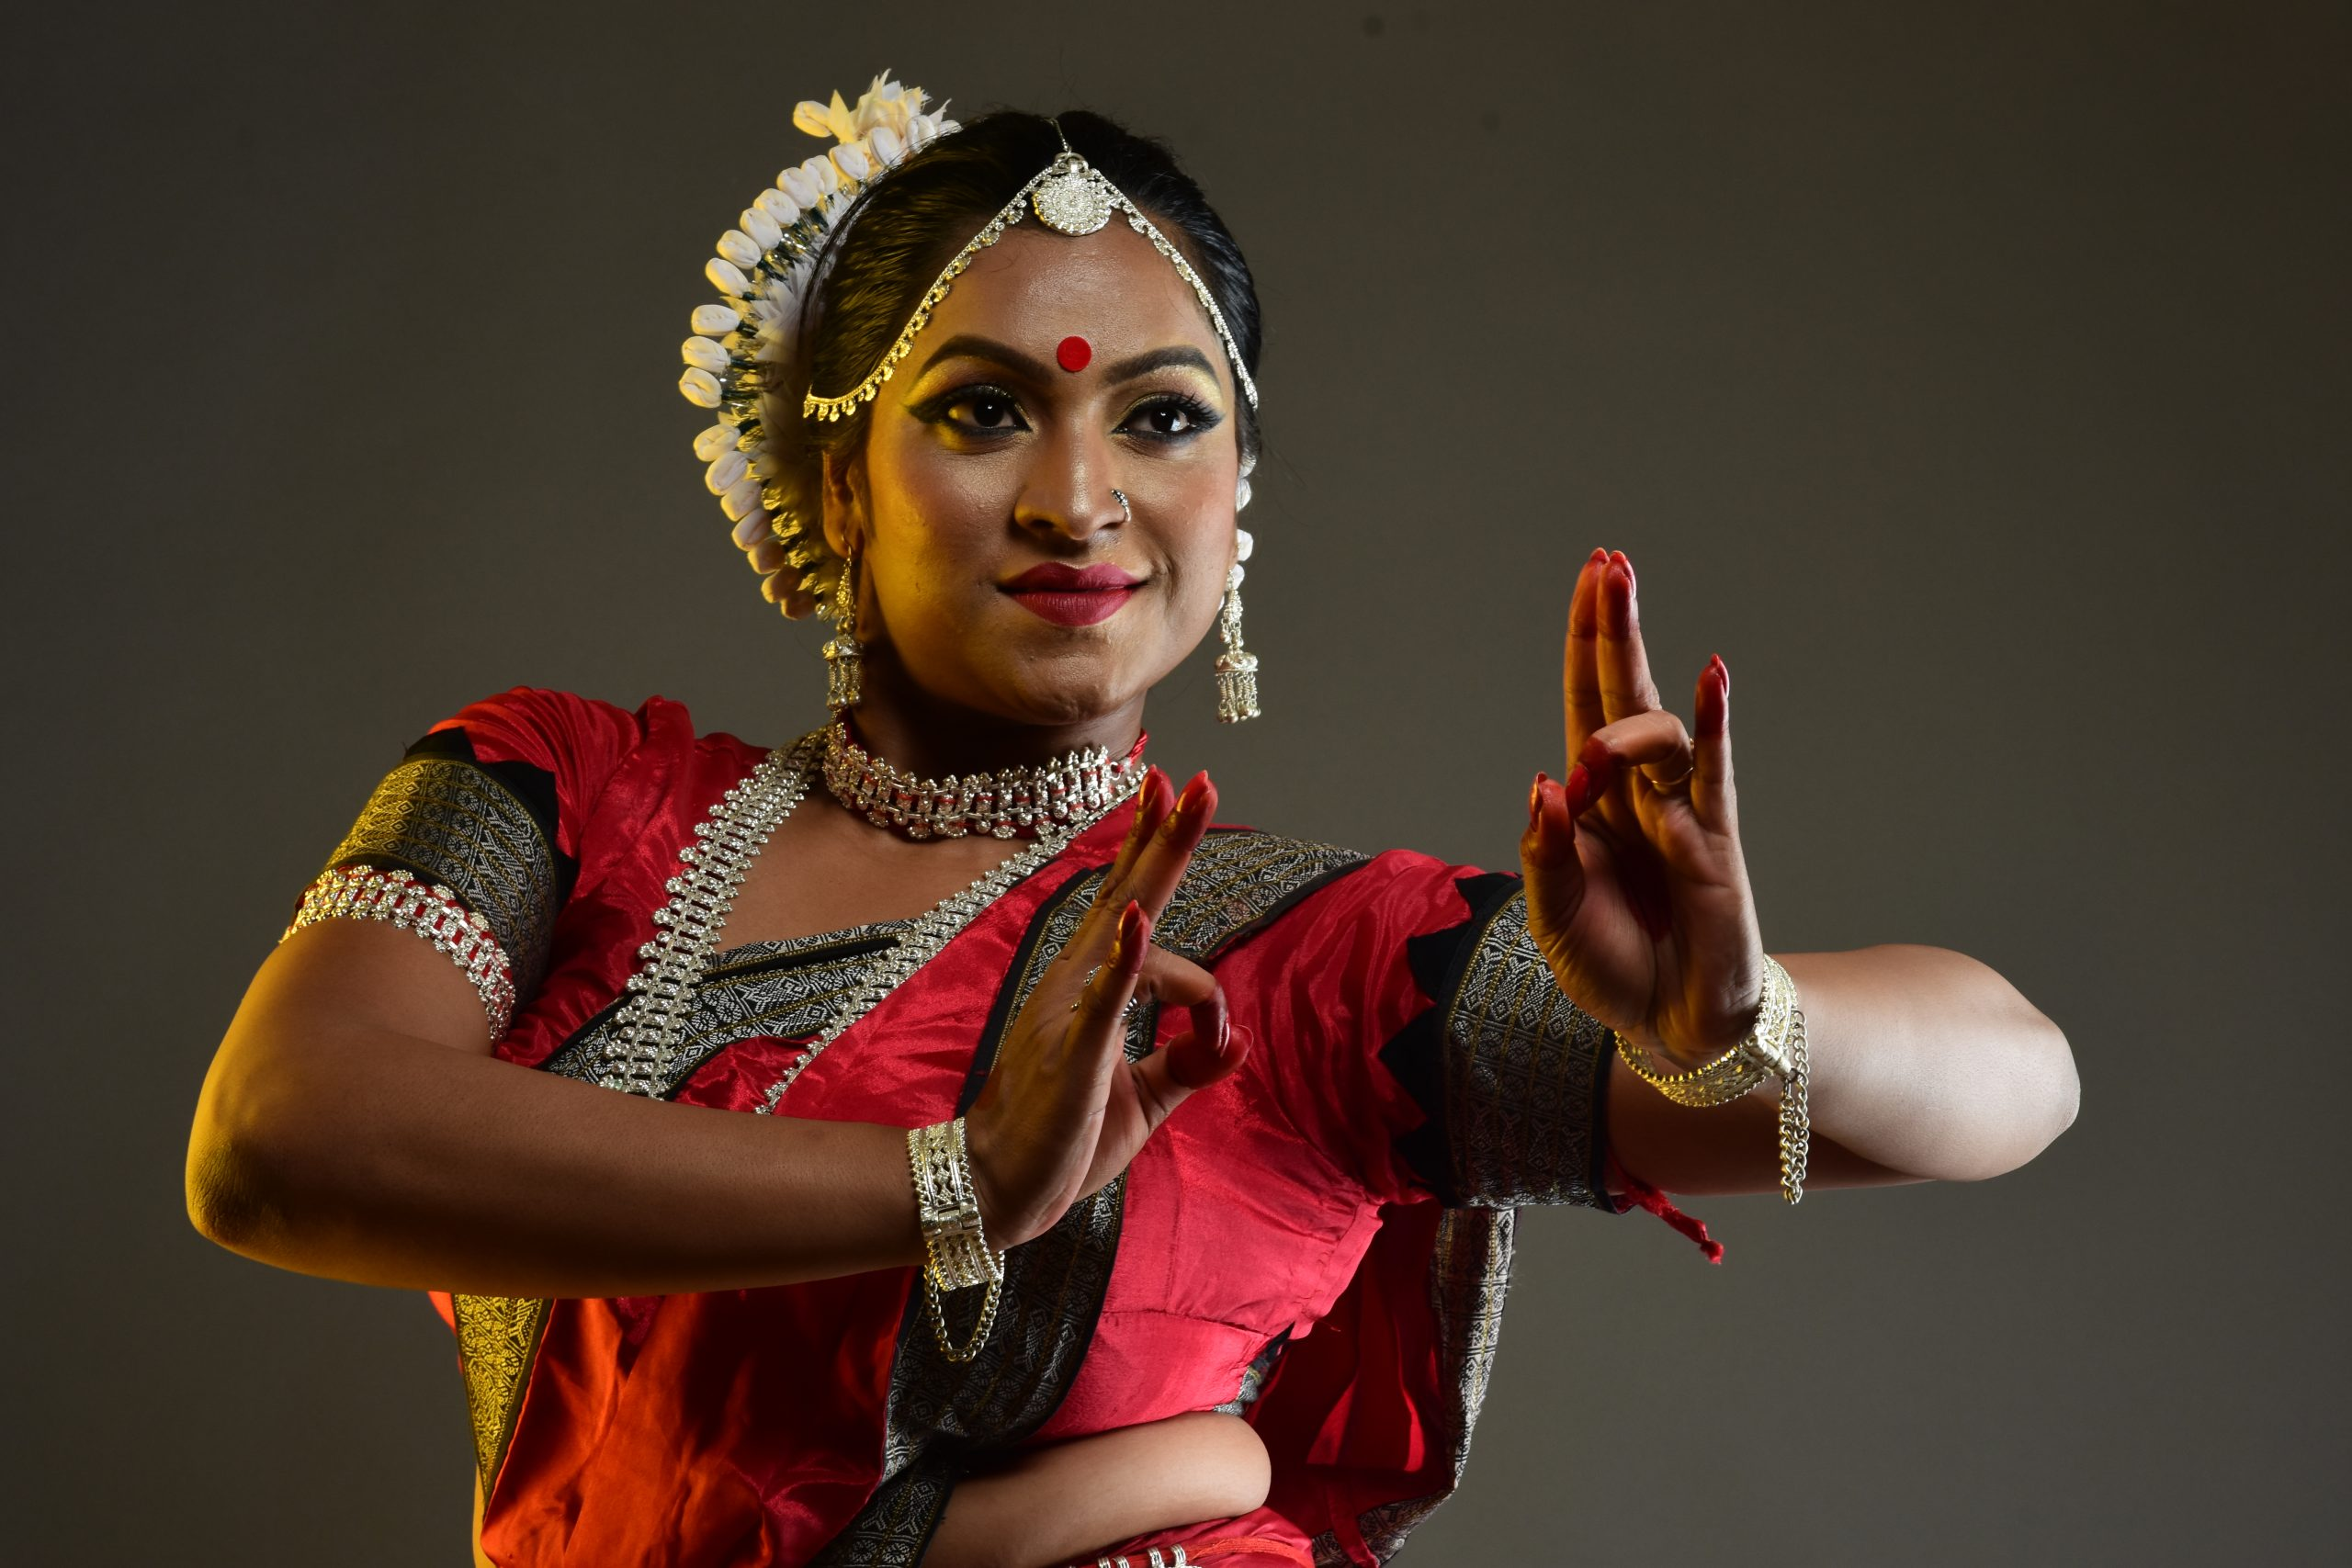 Girl dancer posing with expression